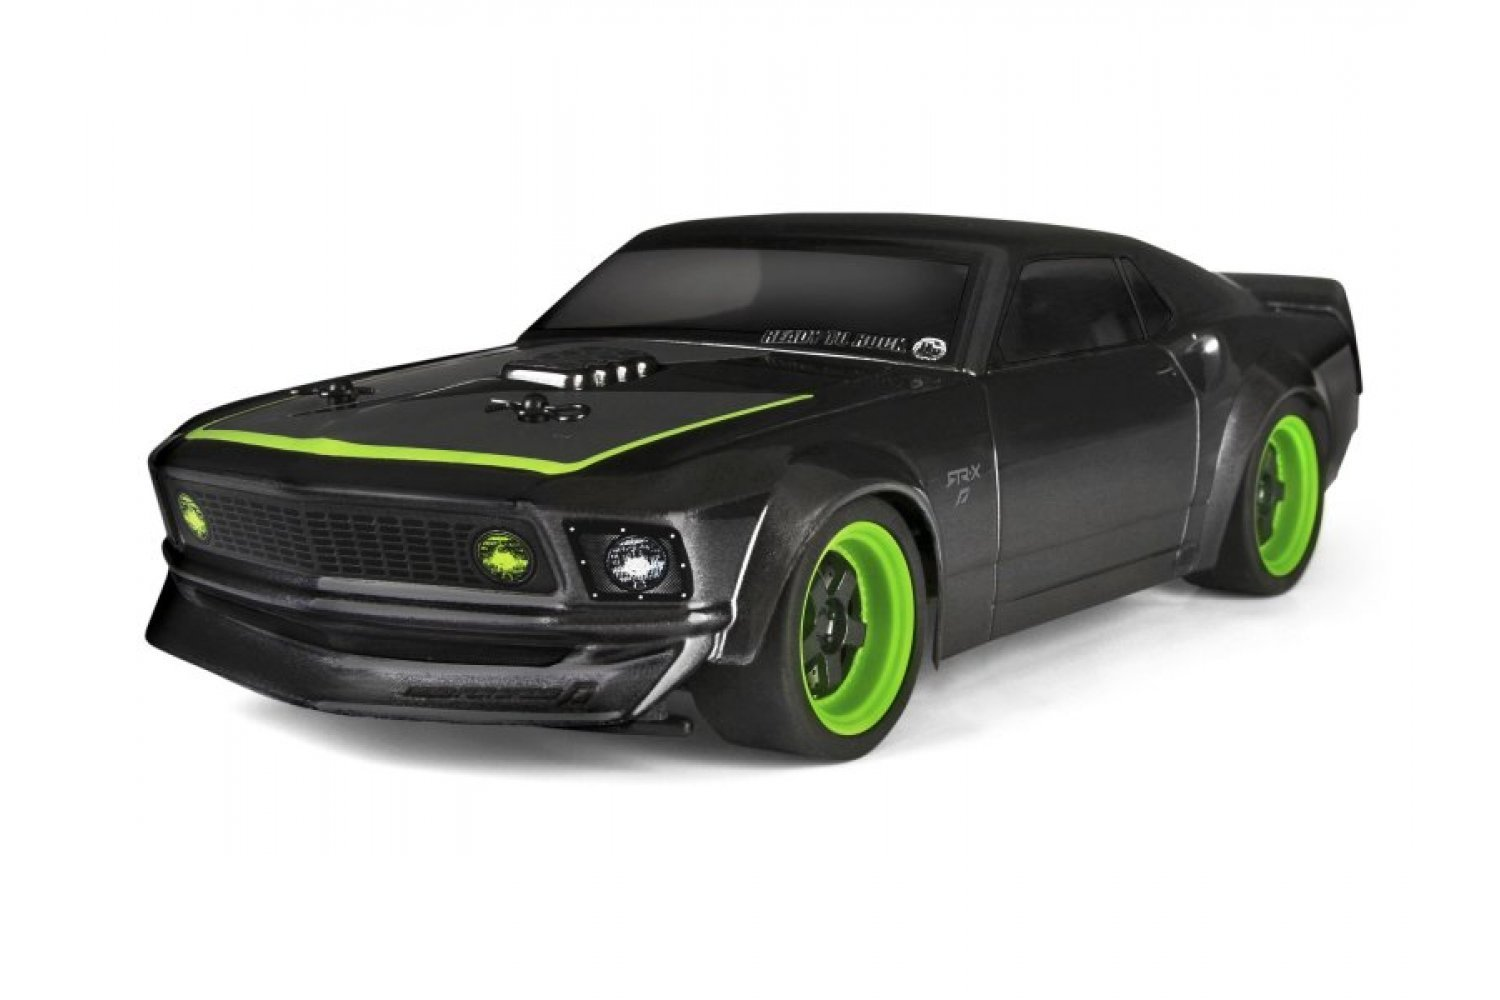 113081 hpi micro rs4 1 18 1969 ford mustang rtr x painted body shell